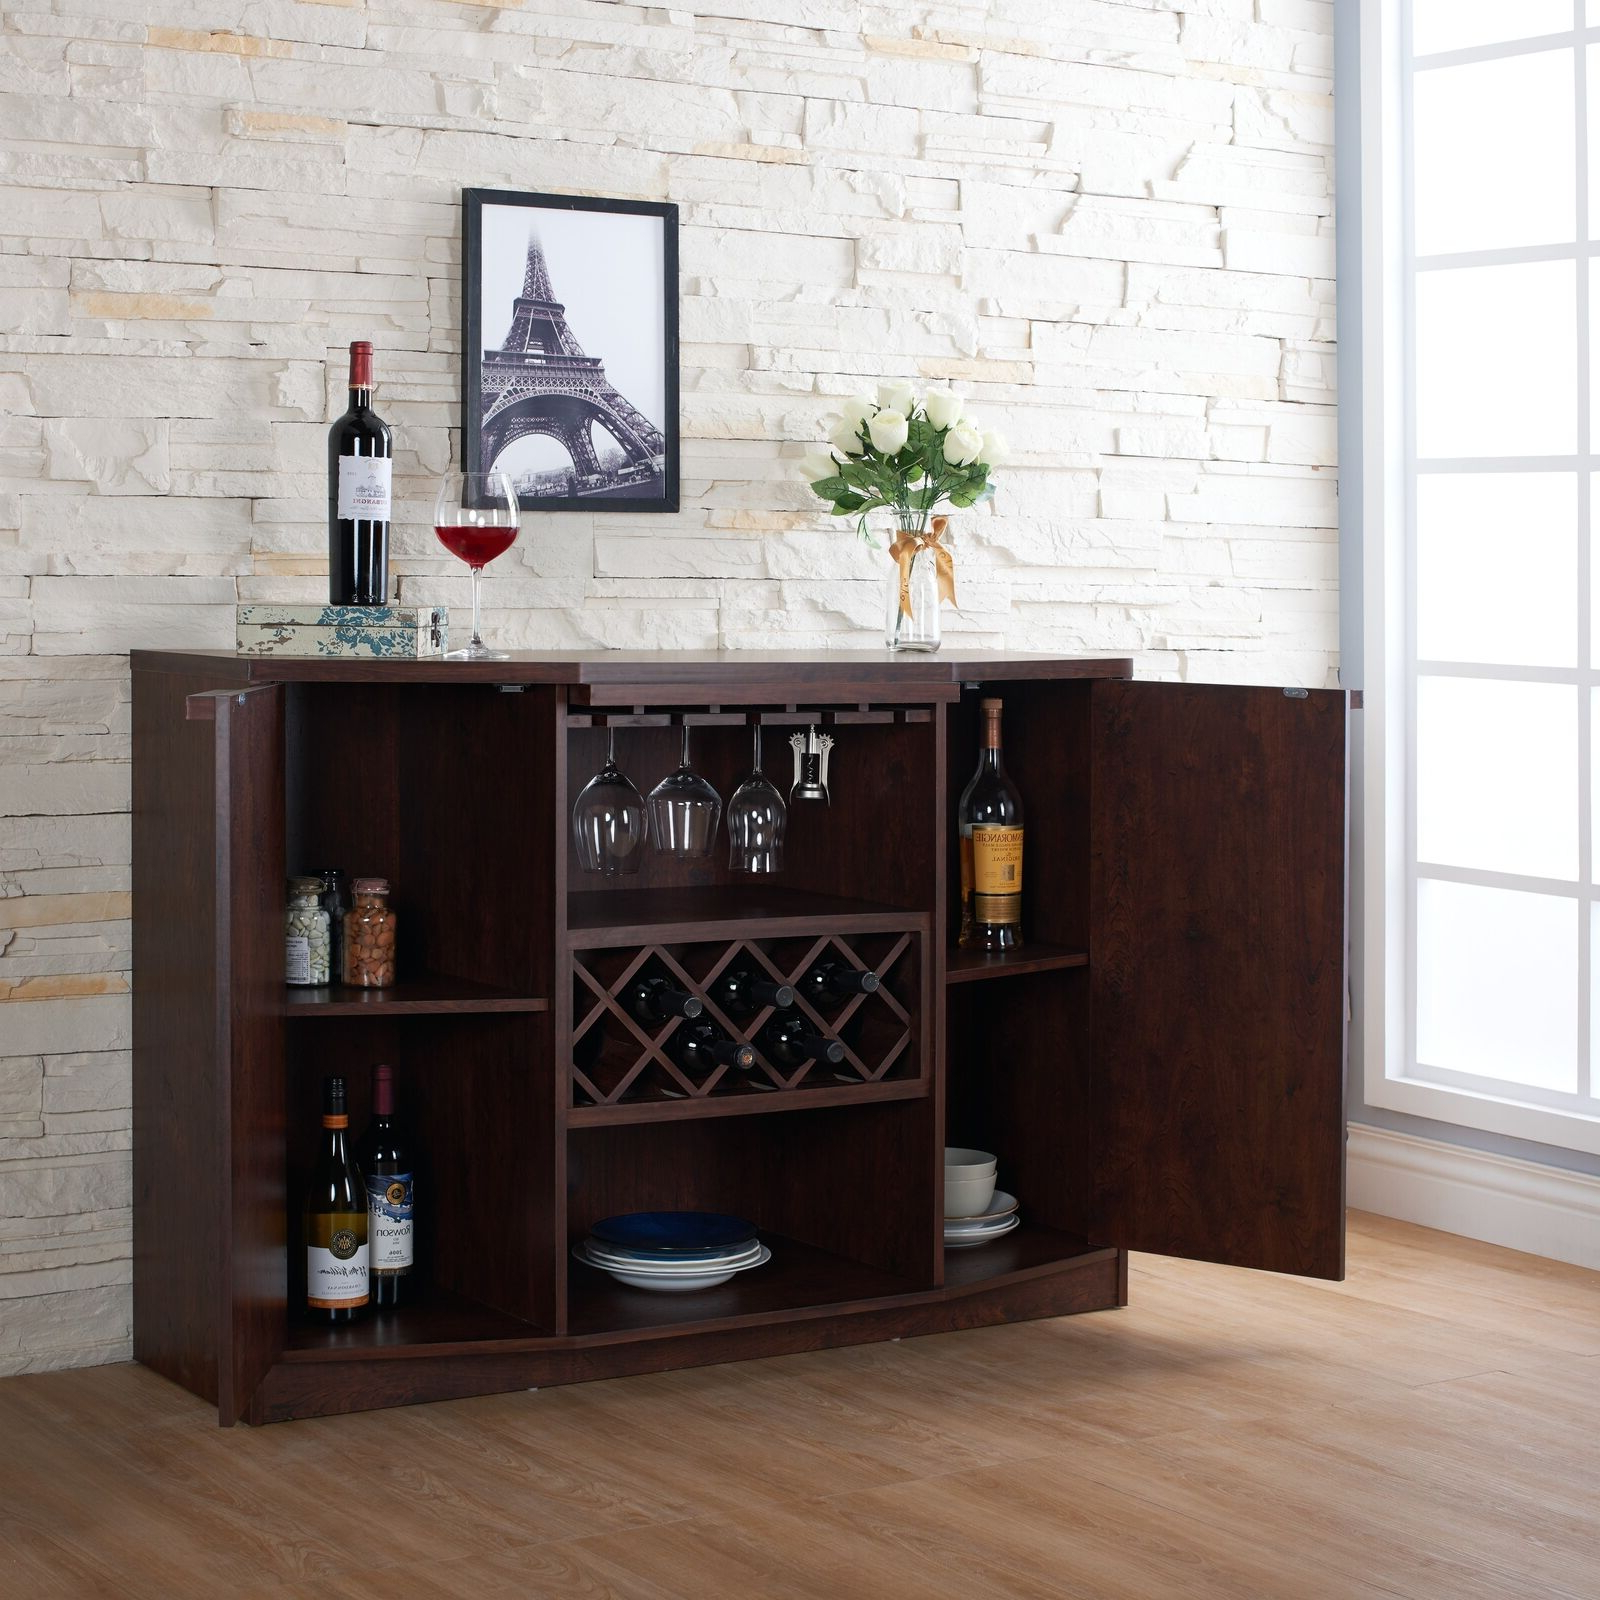 Details About Wine Bar Buffet Cabinet Bottle Rack Wood Storage Hutch Furniture Walnut Brown With Regard To Buffets With Bottle And Glass Storage (View 5 of 20)